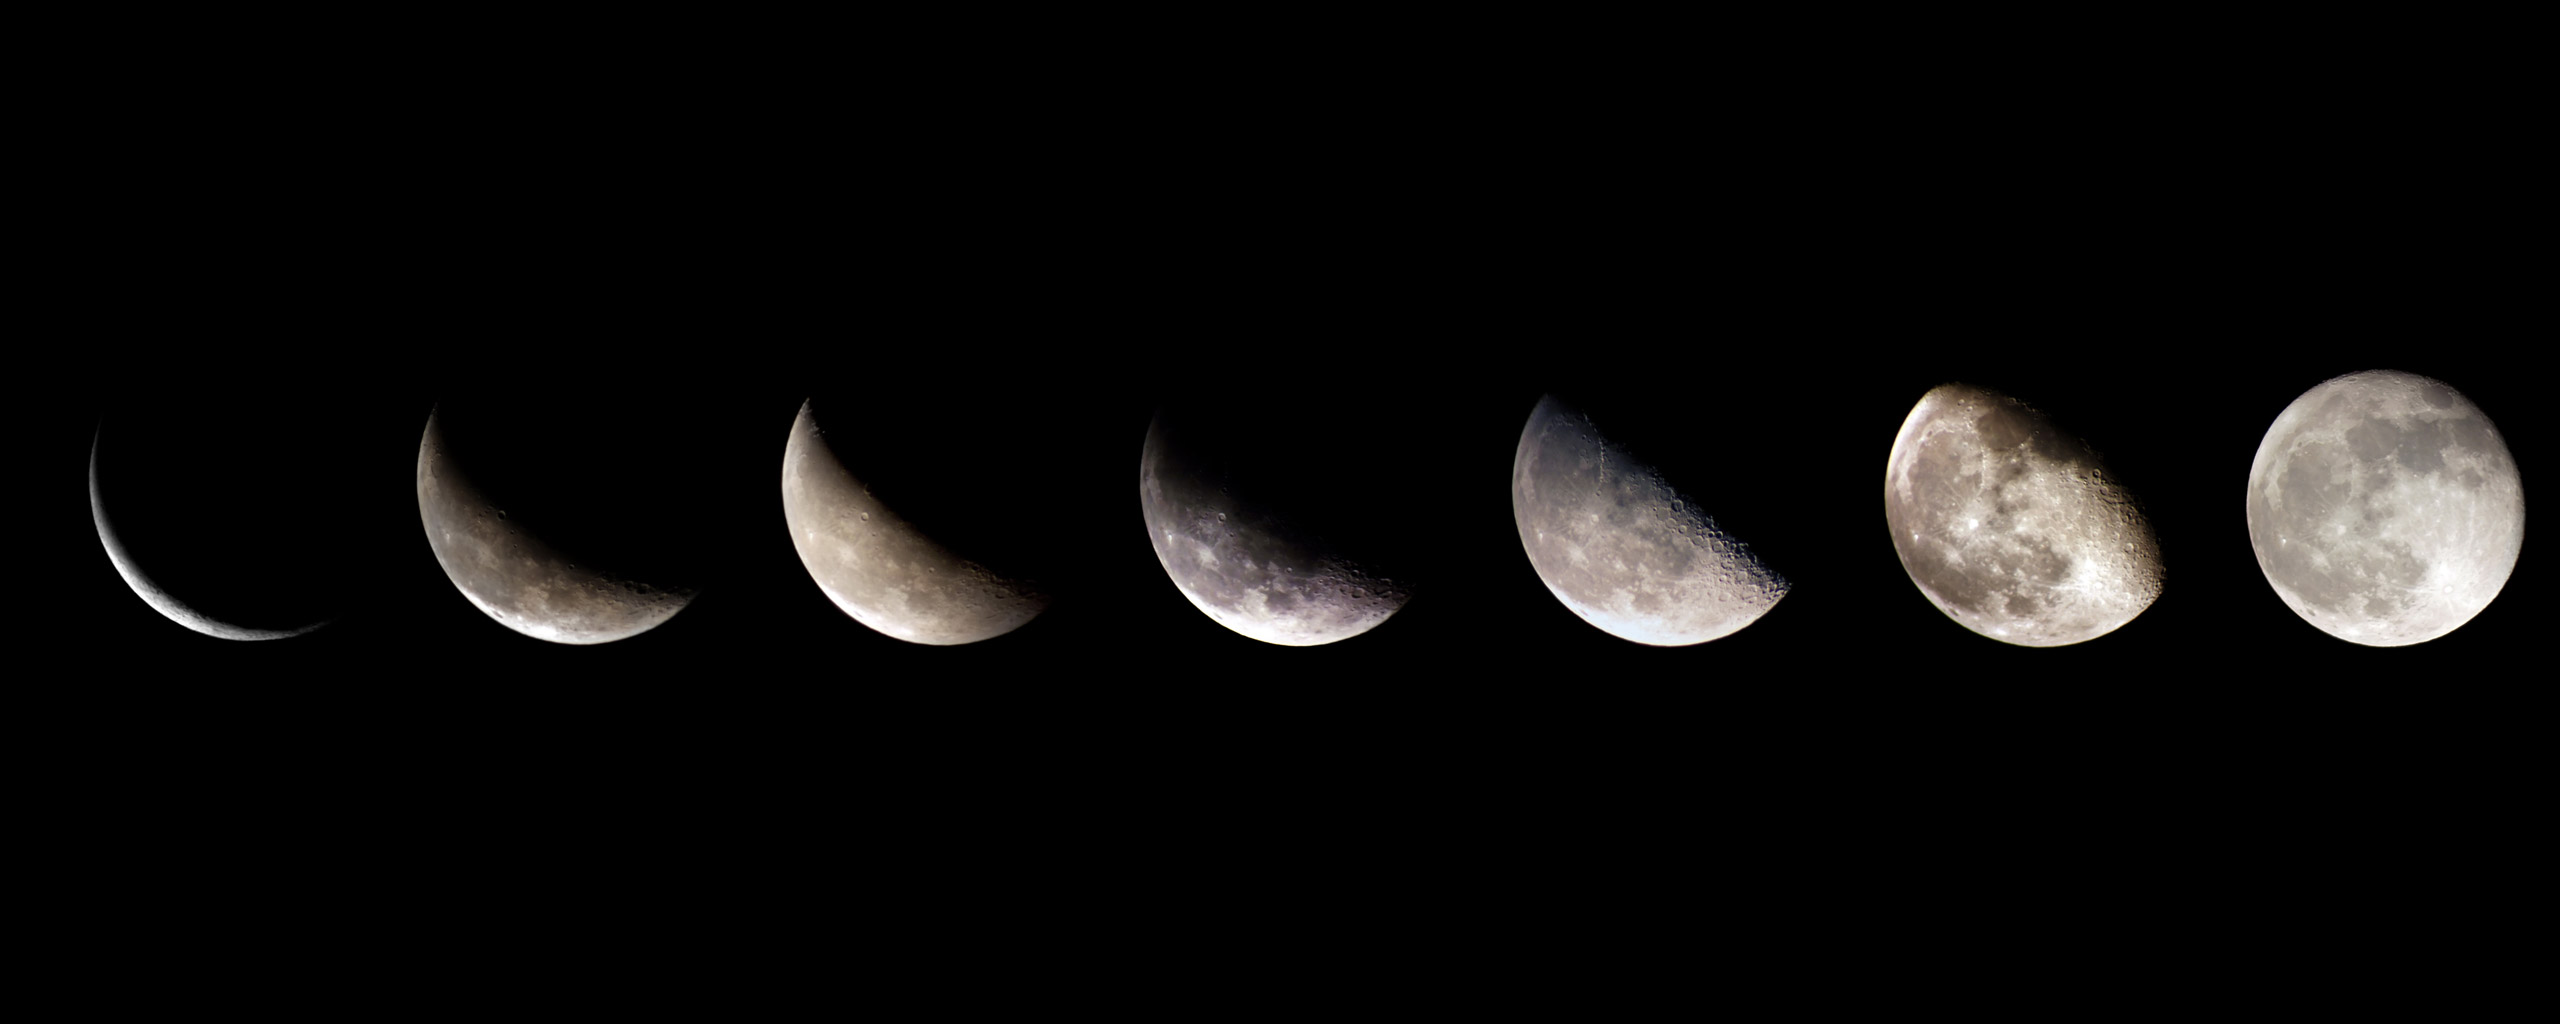 phases of the moonpng 2560x1024